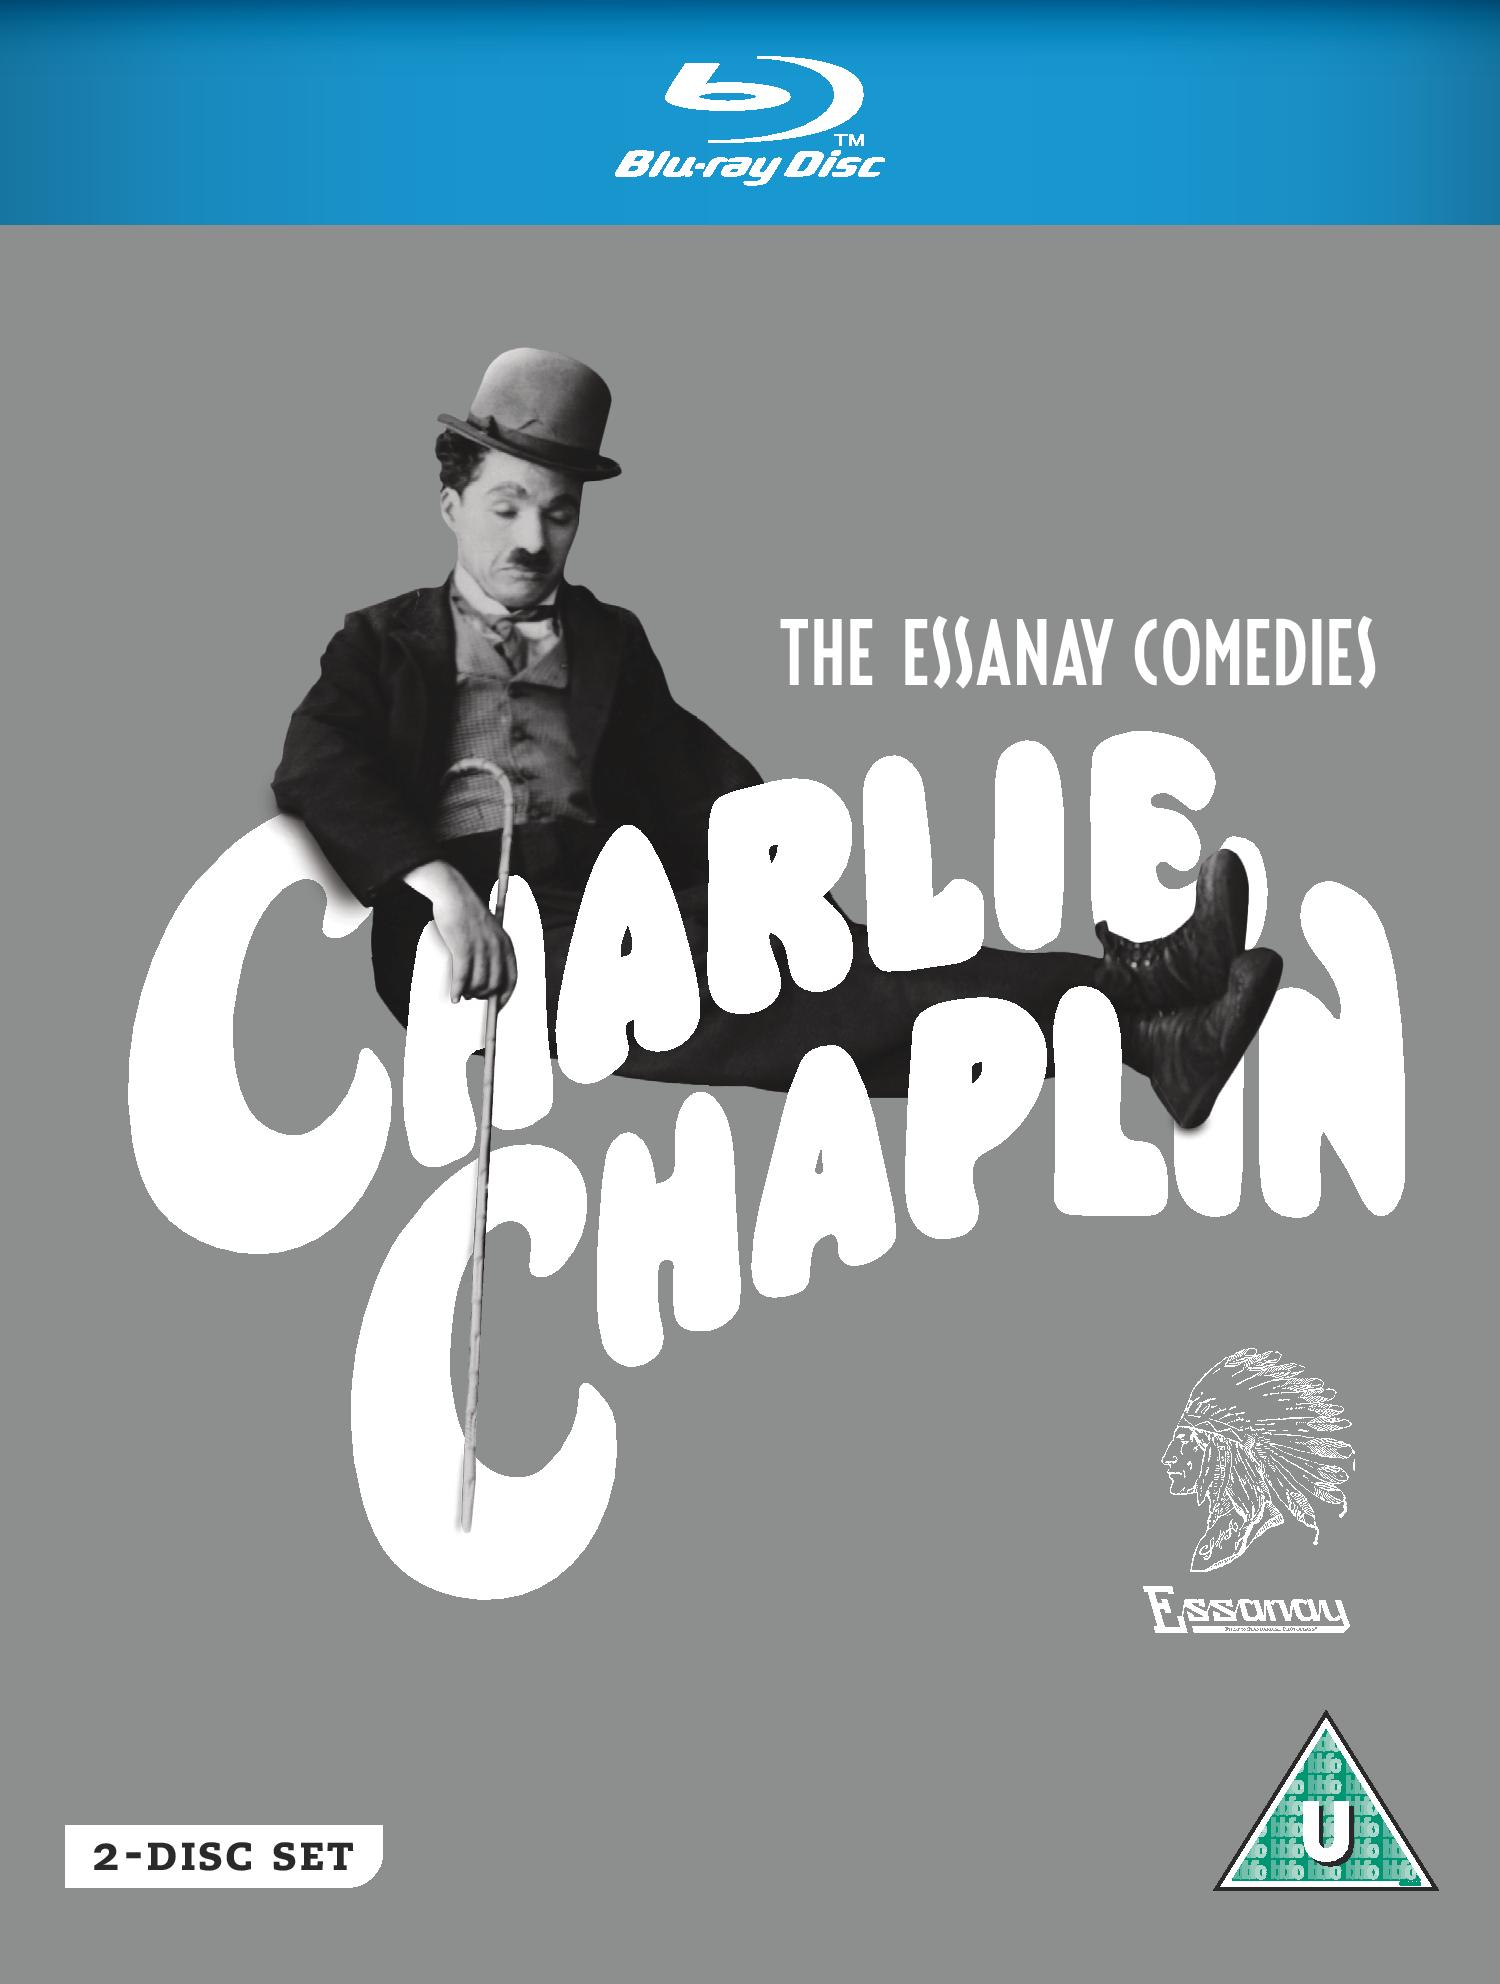 Buy Charlie Chaplin: The Essanay Comedies (Blu-ray)